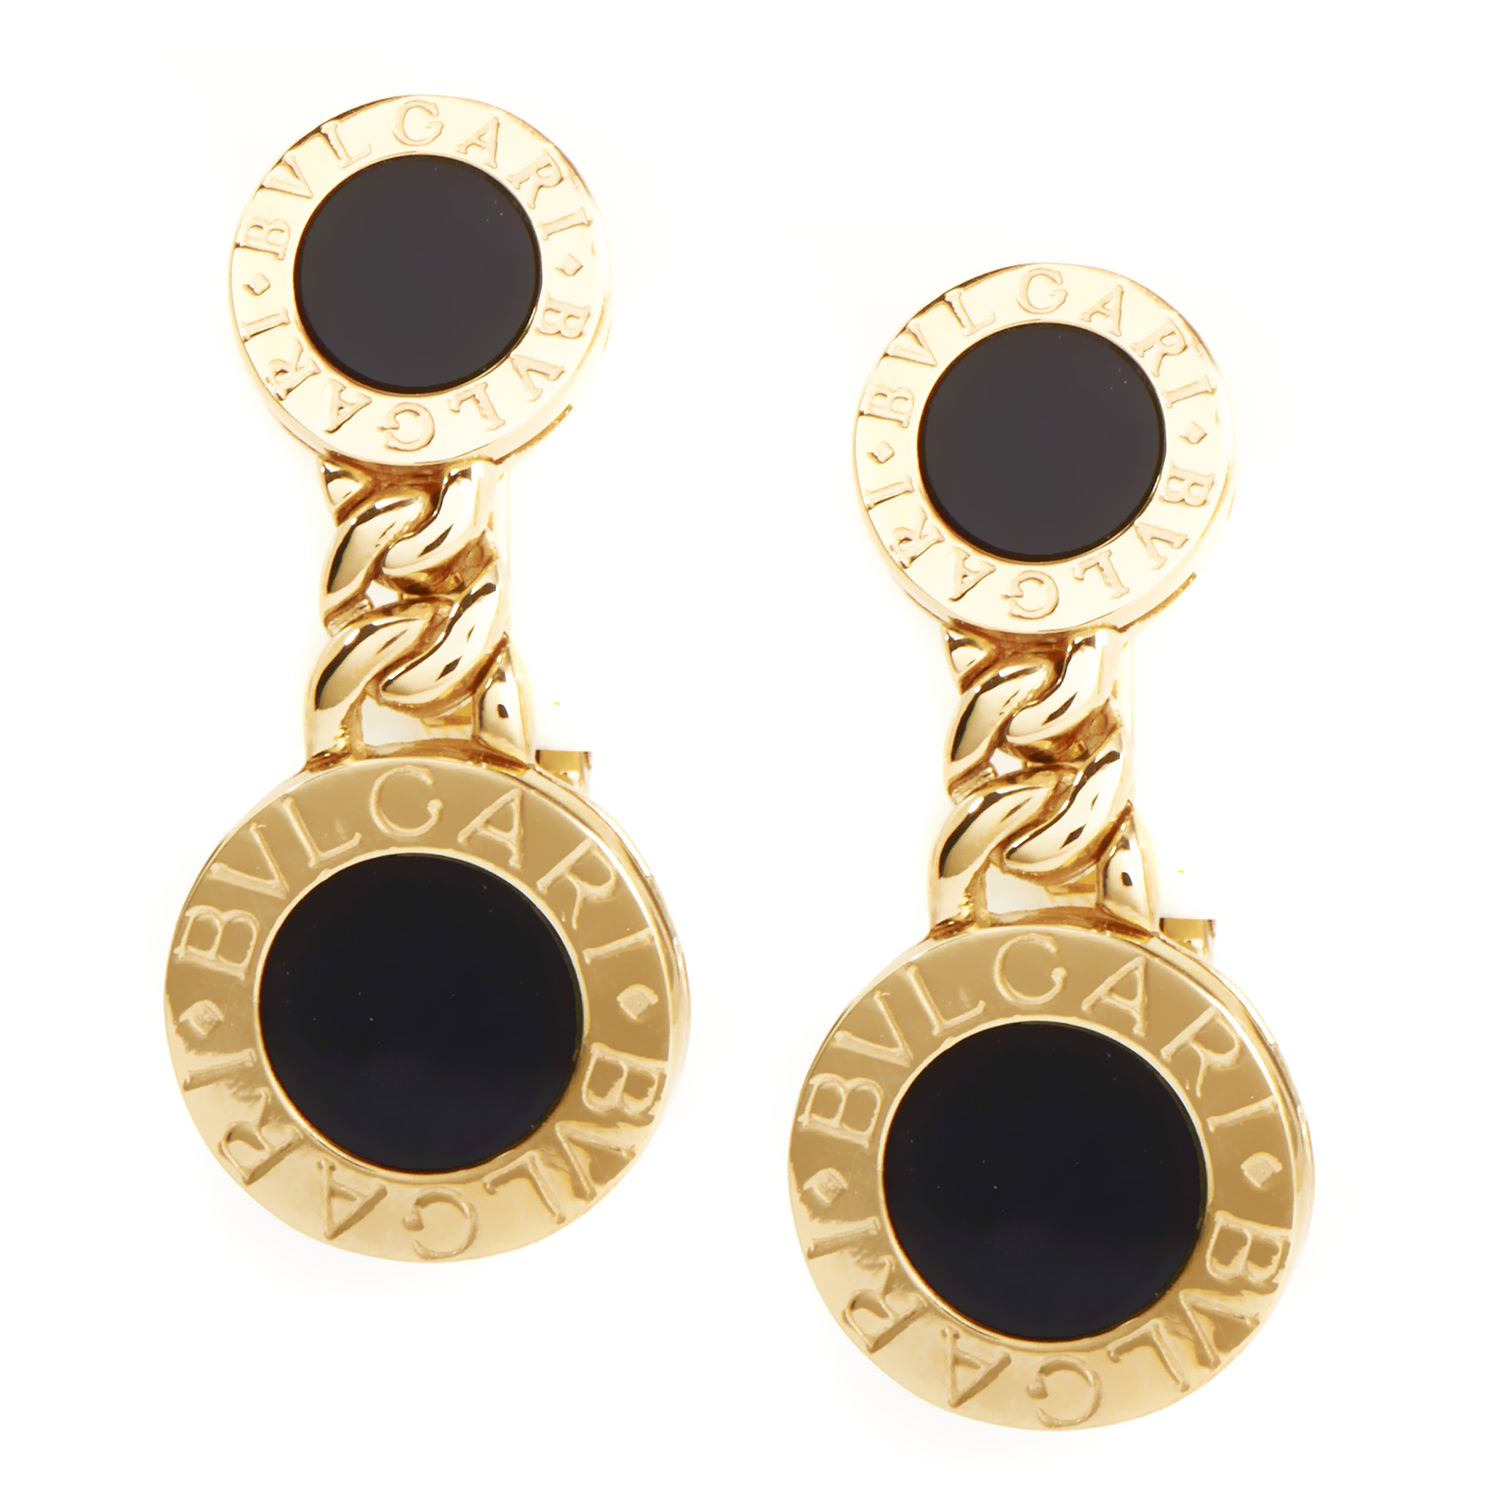 Bvlgari BVLGARI-BVLGARI 18K Yellow Gold Onyx Clip-on Women's Earrings